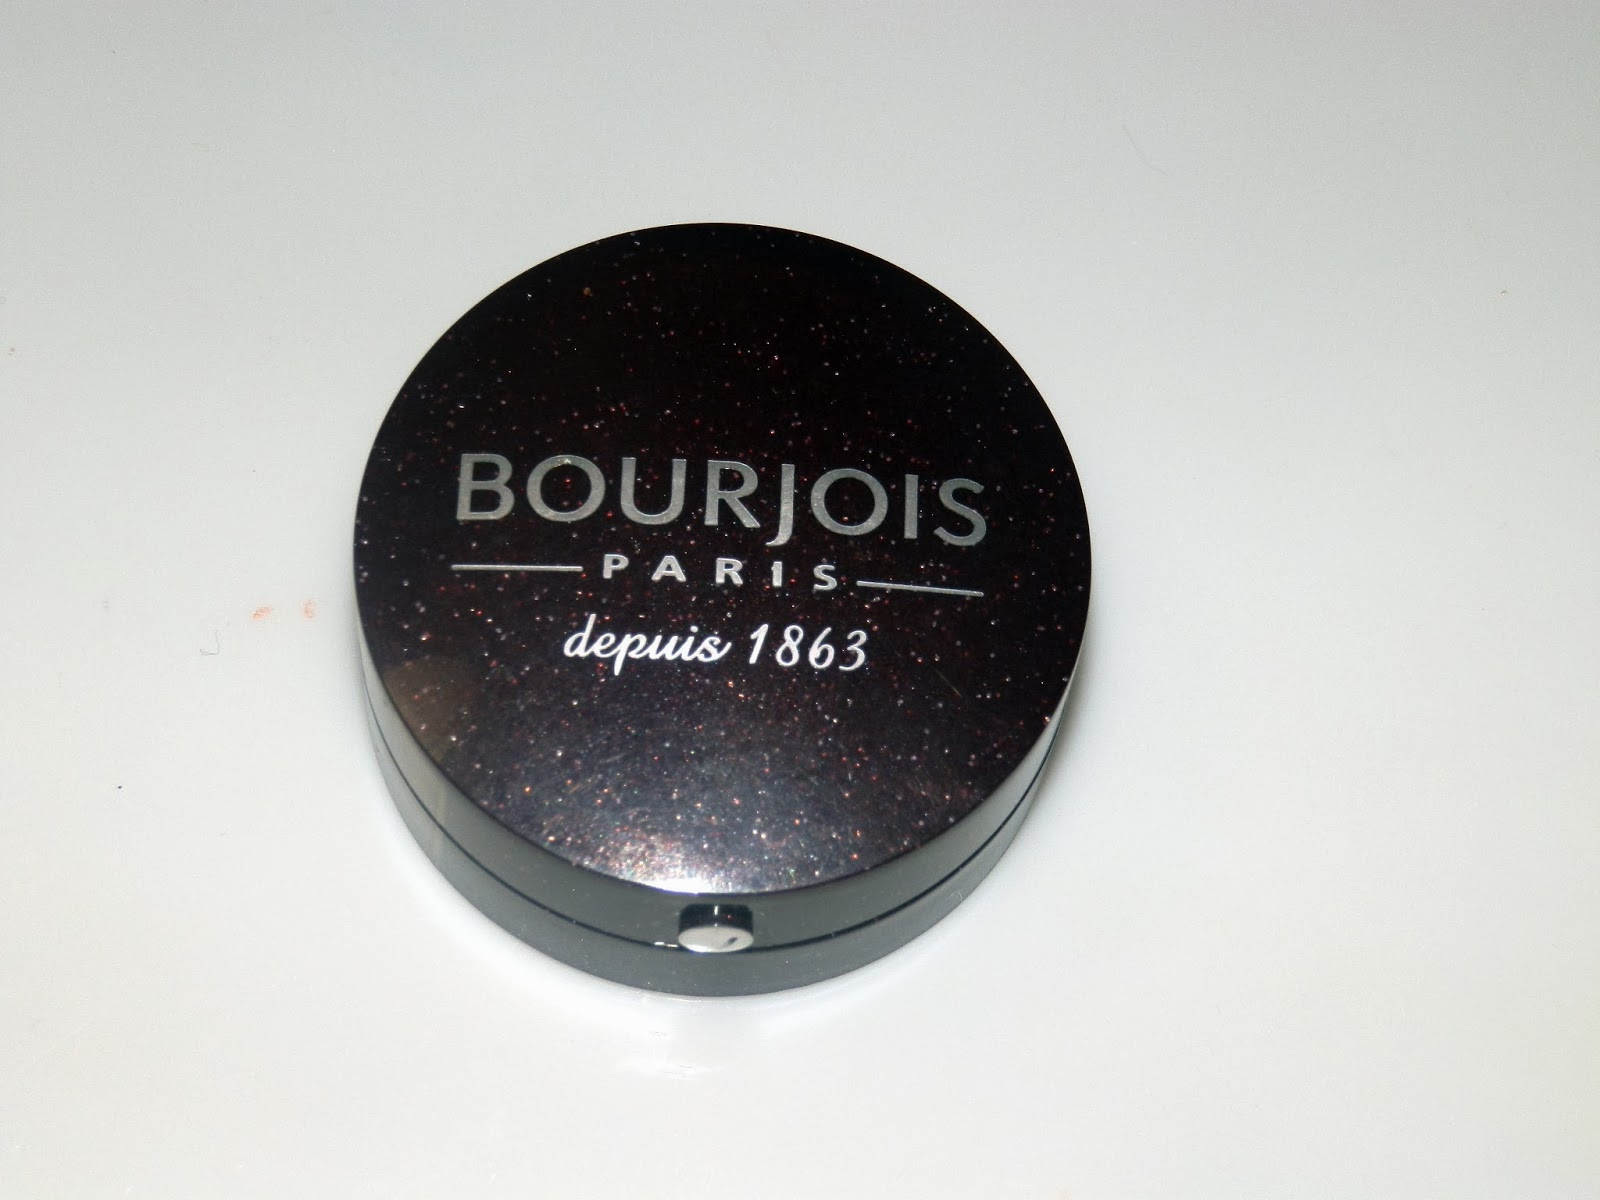 Bourjois Little Round Pot Eyeshadow No.13 Prune Pailettes Swatches